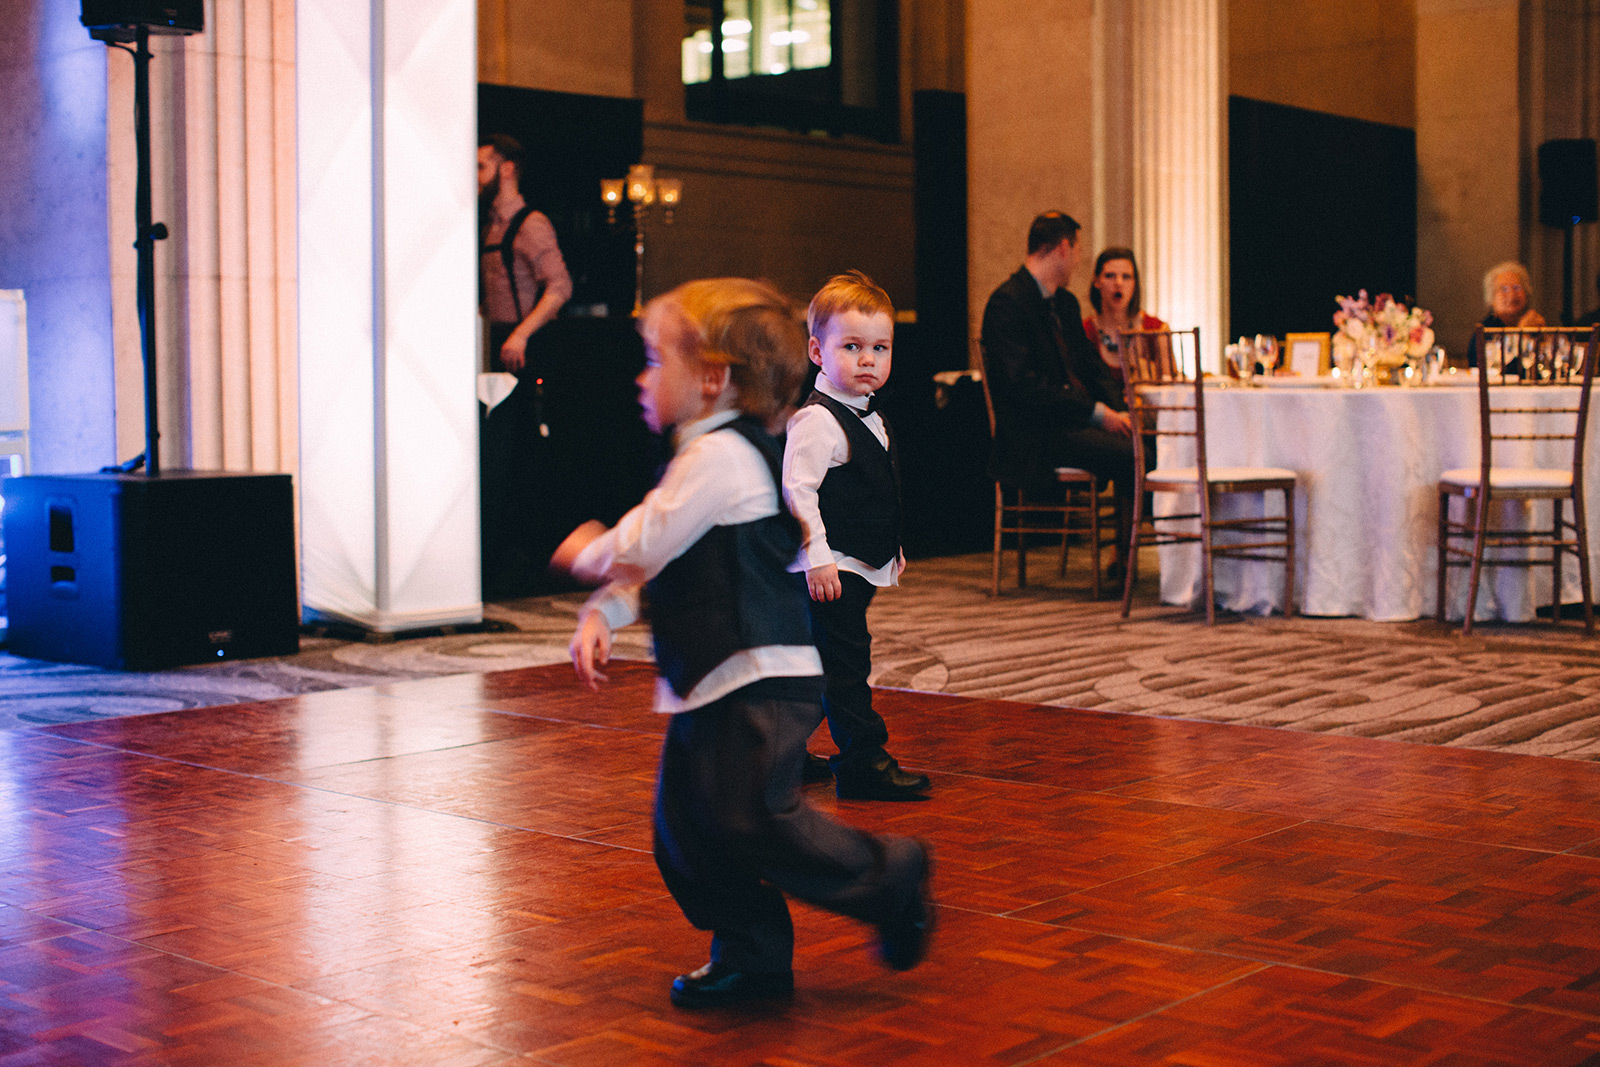 One-King-West-Toronto-wedding-photography_Sam-Wong-of-Visual-Cravings_KnR-34